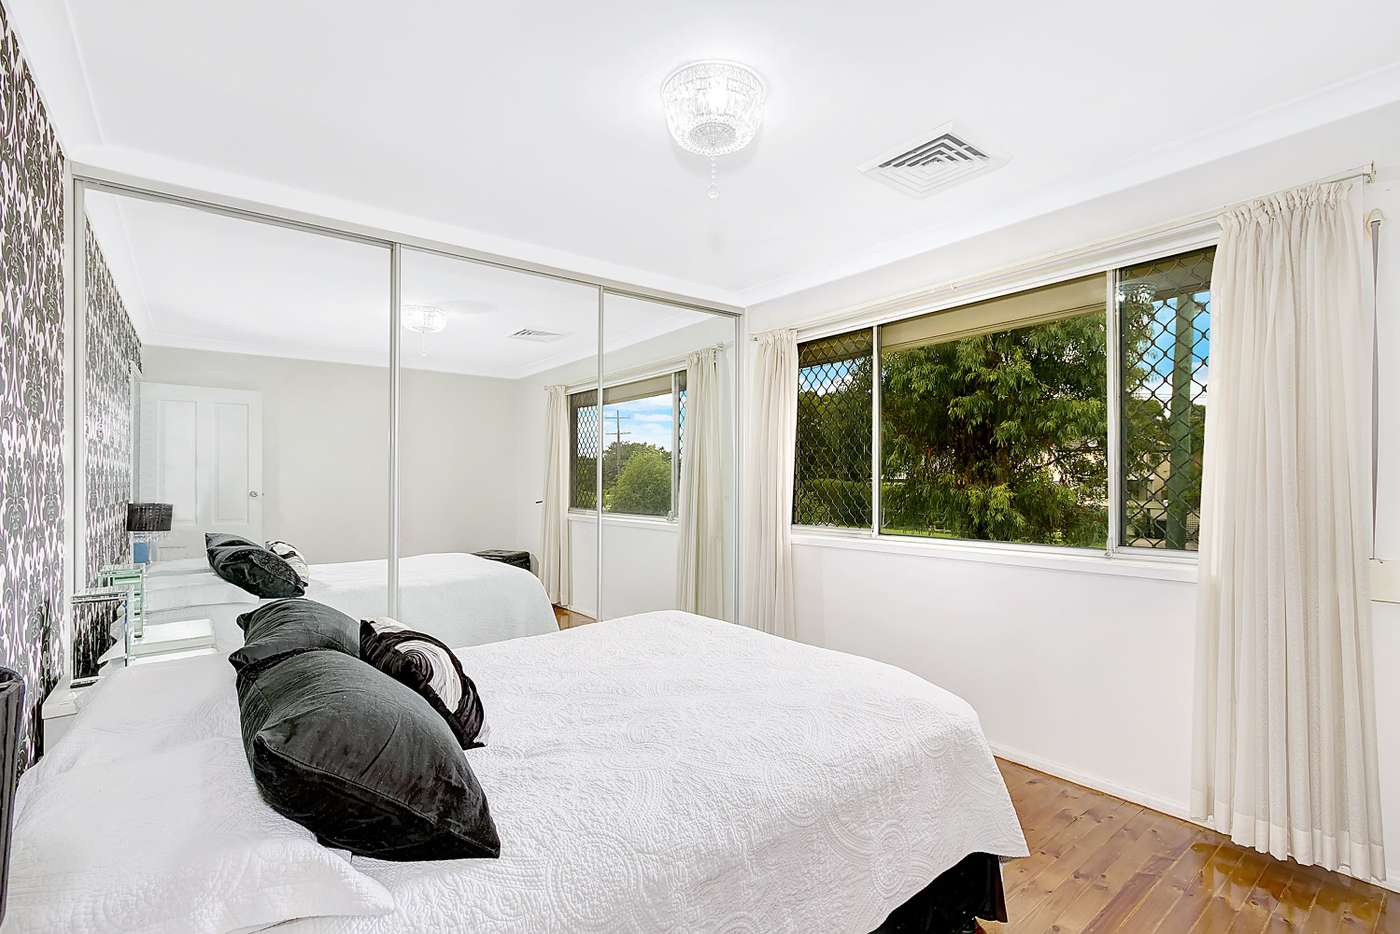 Sixth view of Homely house listing, 26 Alpha Road, Greystanes NSW 2145